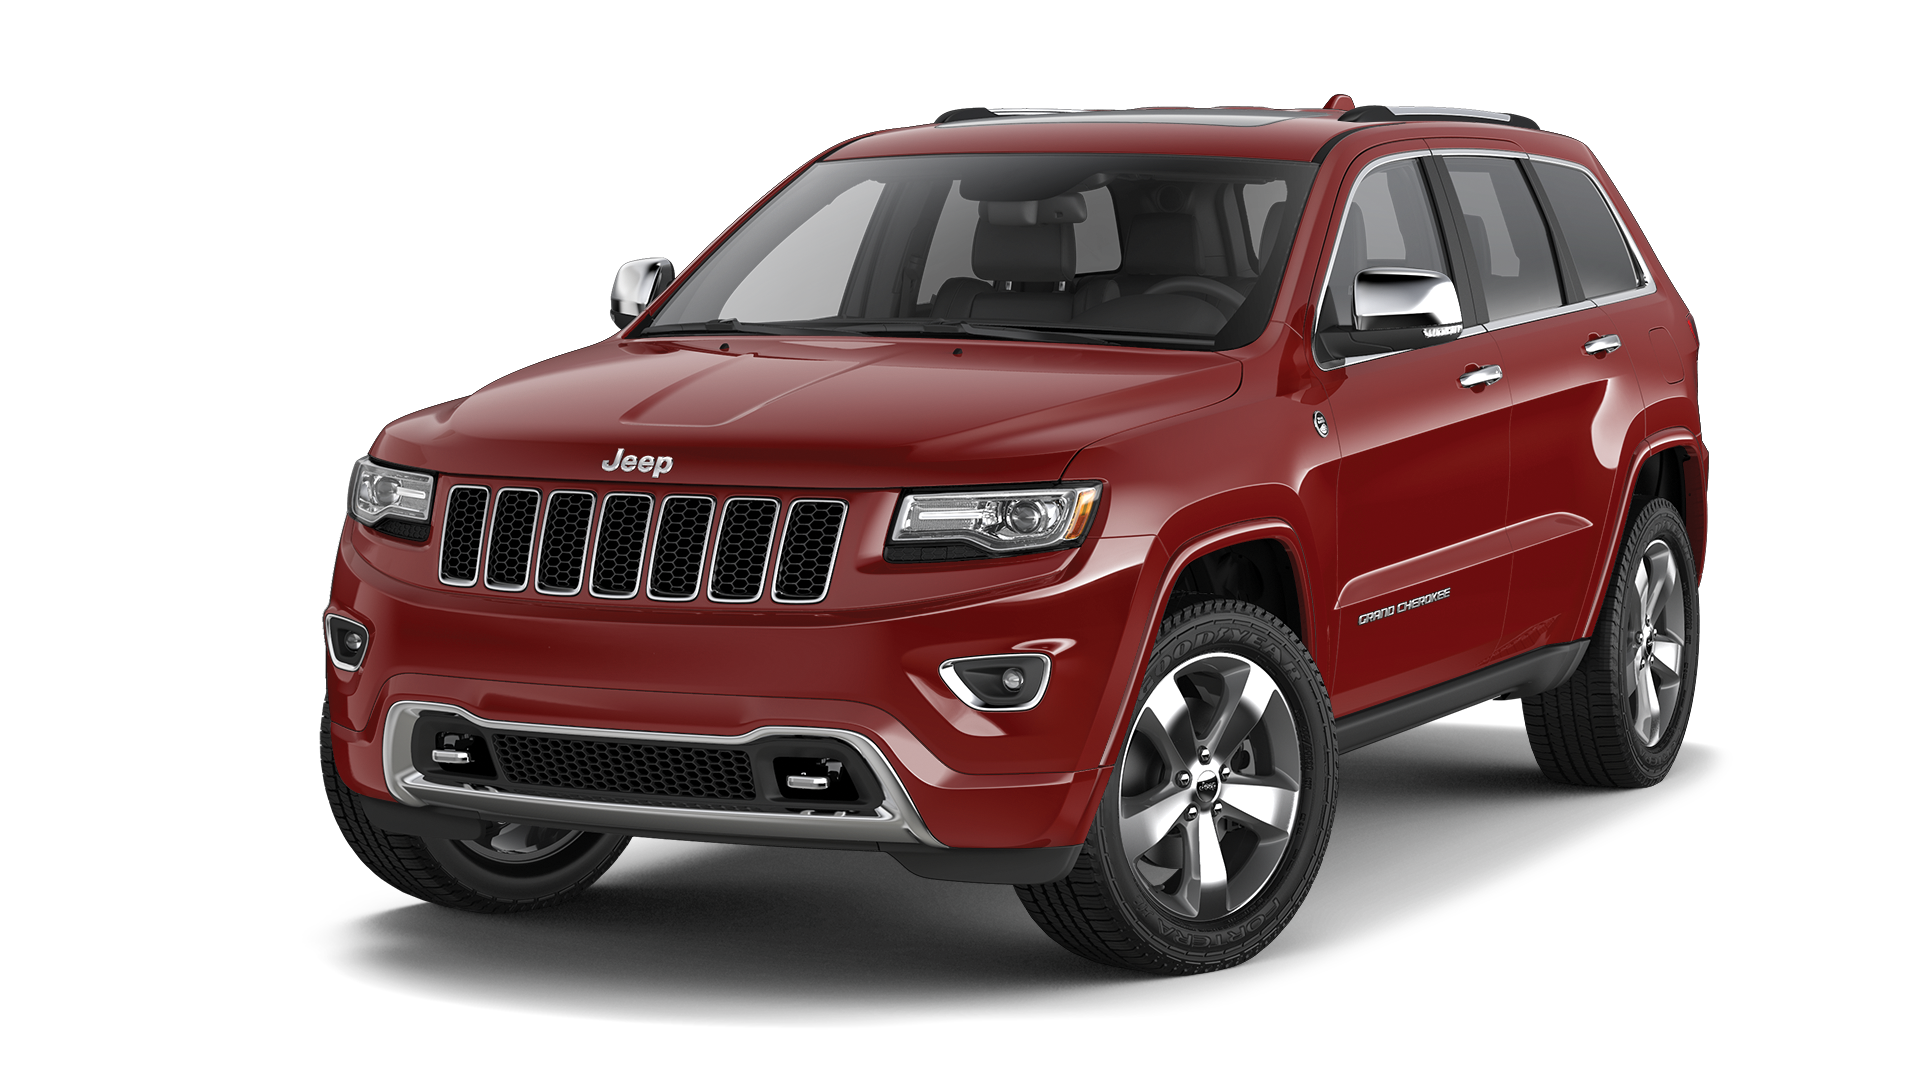 power in utility the new 2014 jeep grand cherokee the news wheel. Black Bedroom Furniture Sets. Home Design Ideas